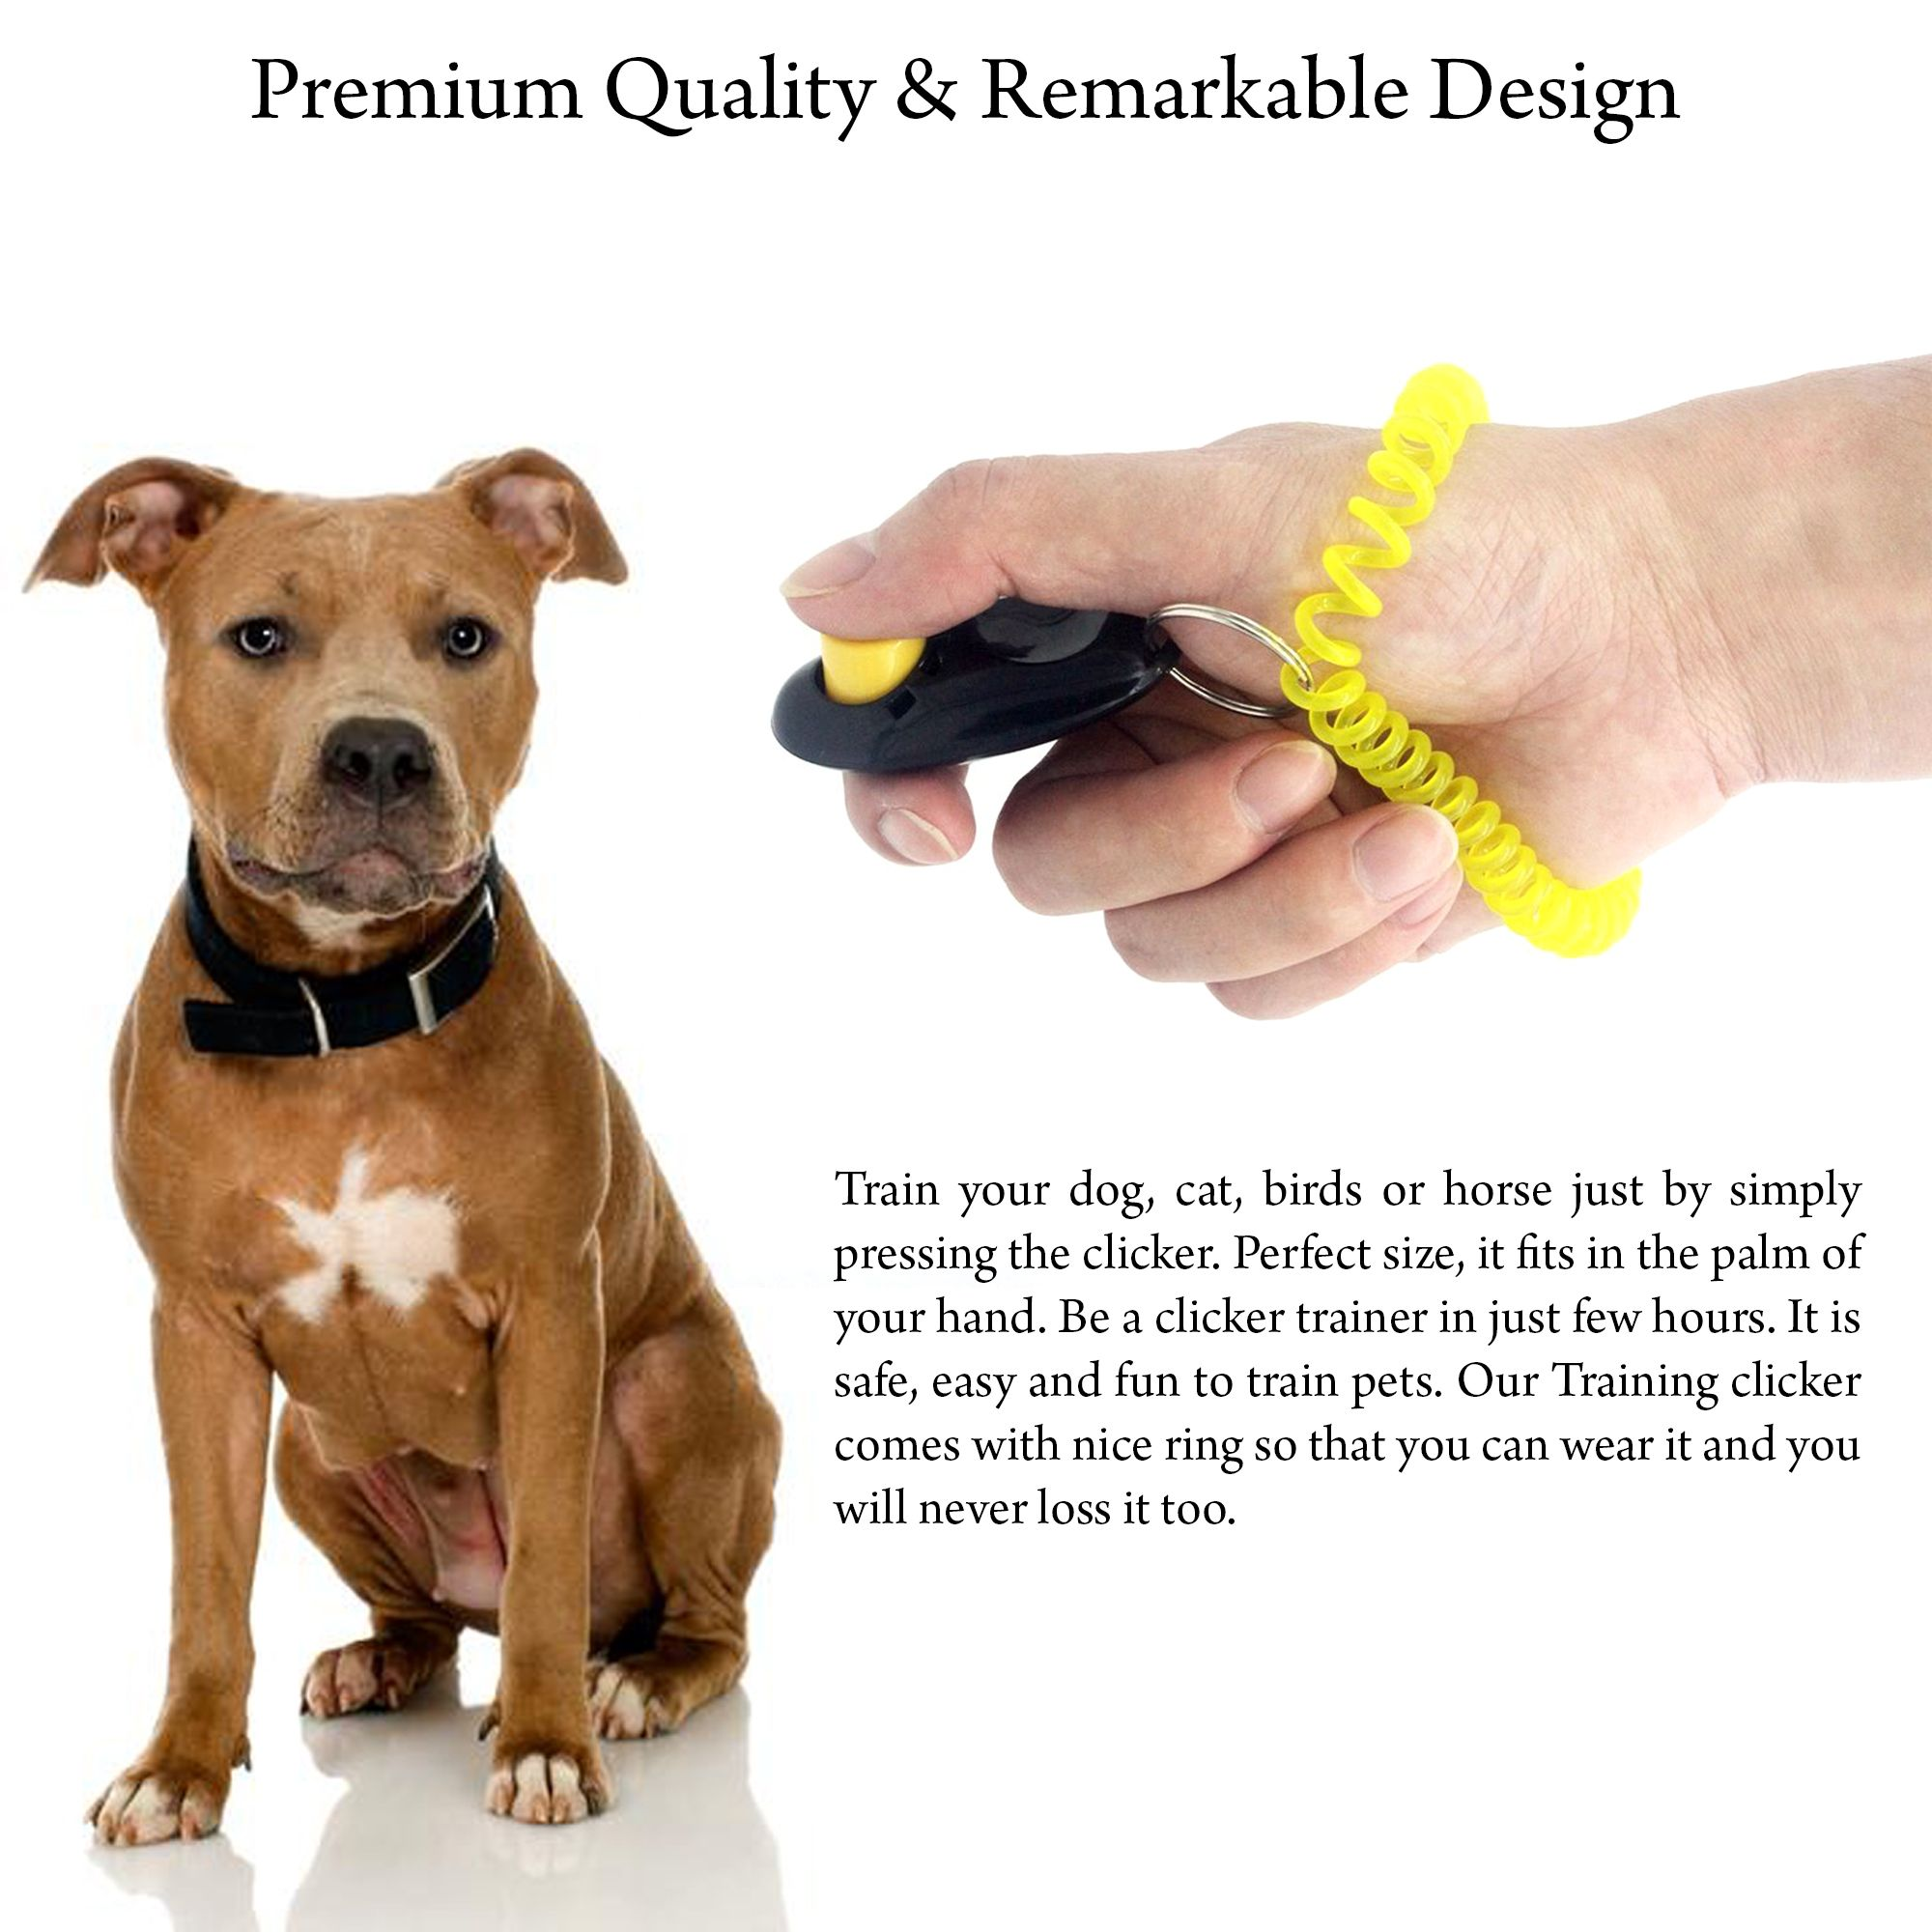 Dog Training Clicker And Dog Whistle With Free Ebooks Are Sold By